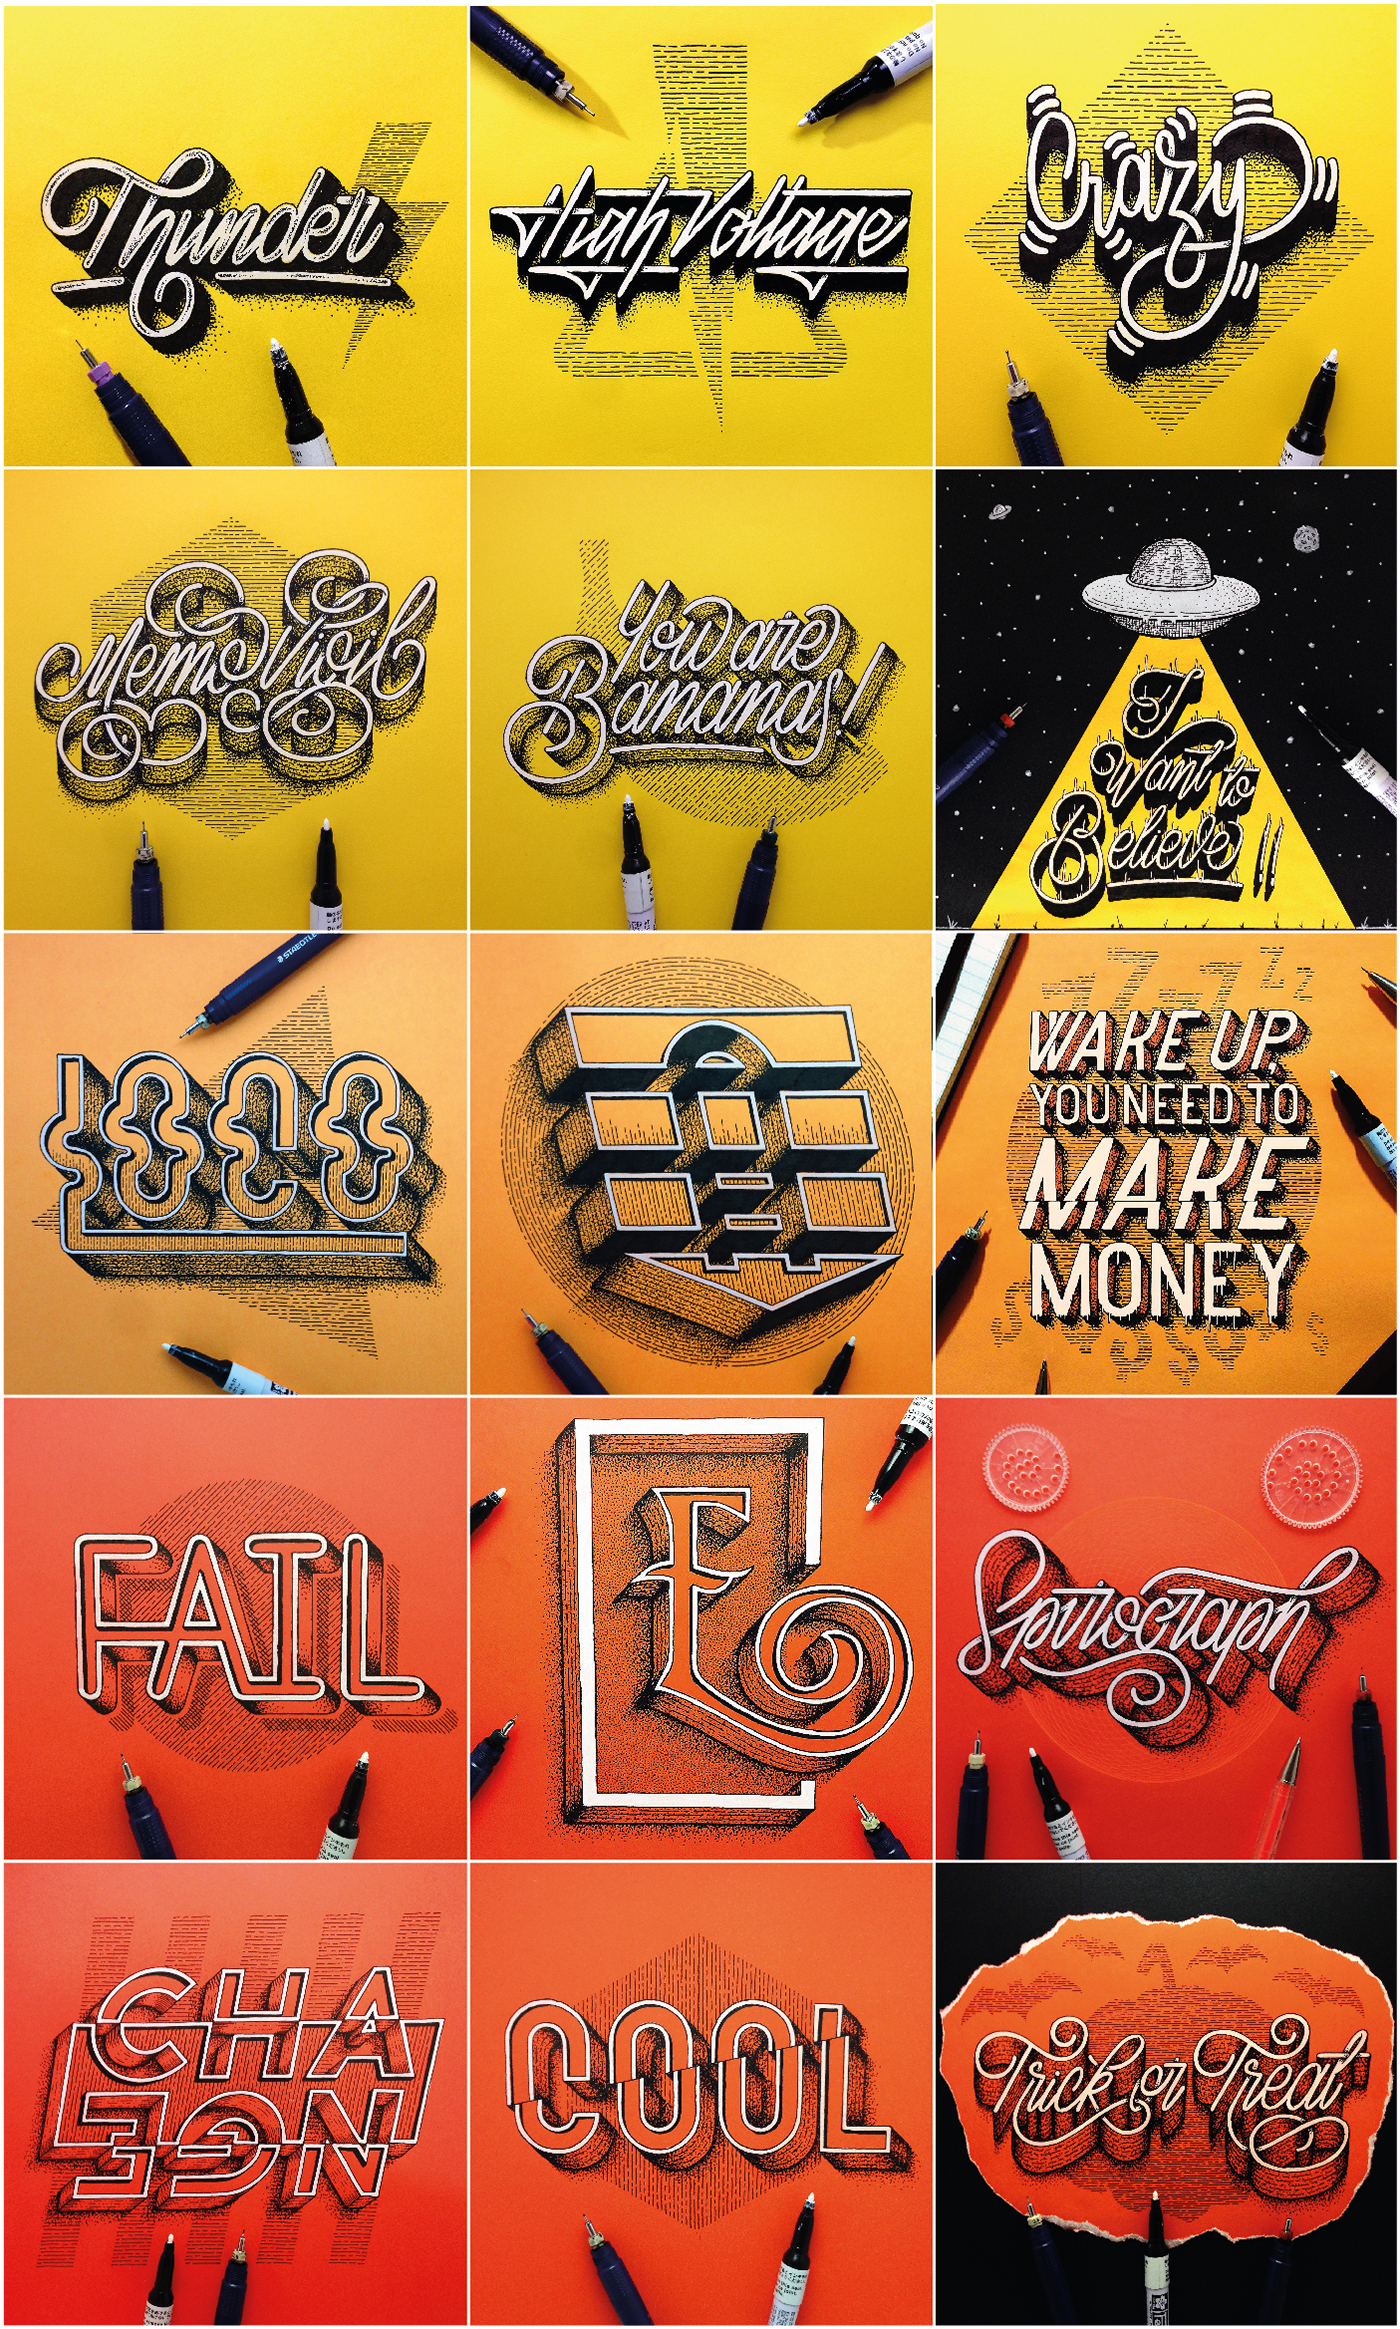 lettering handmade type mexico letters instagram collage